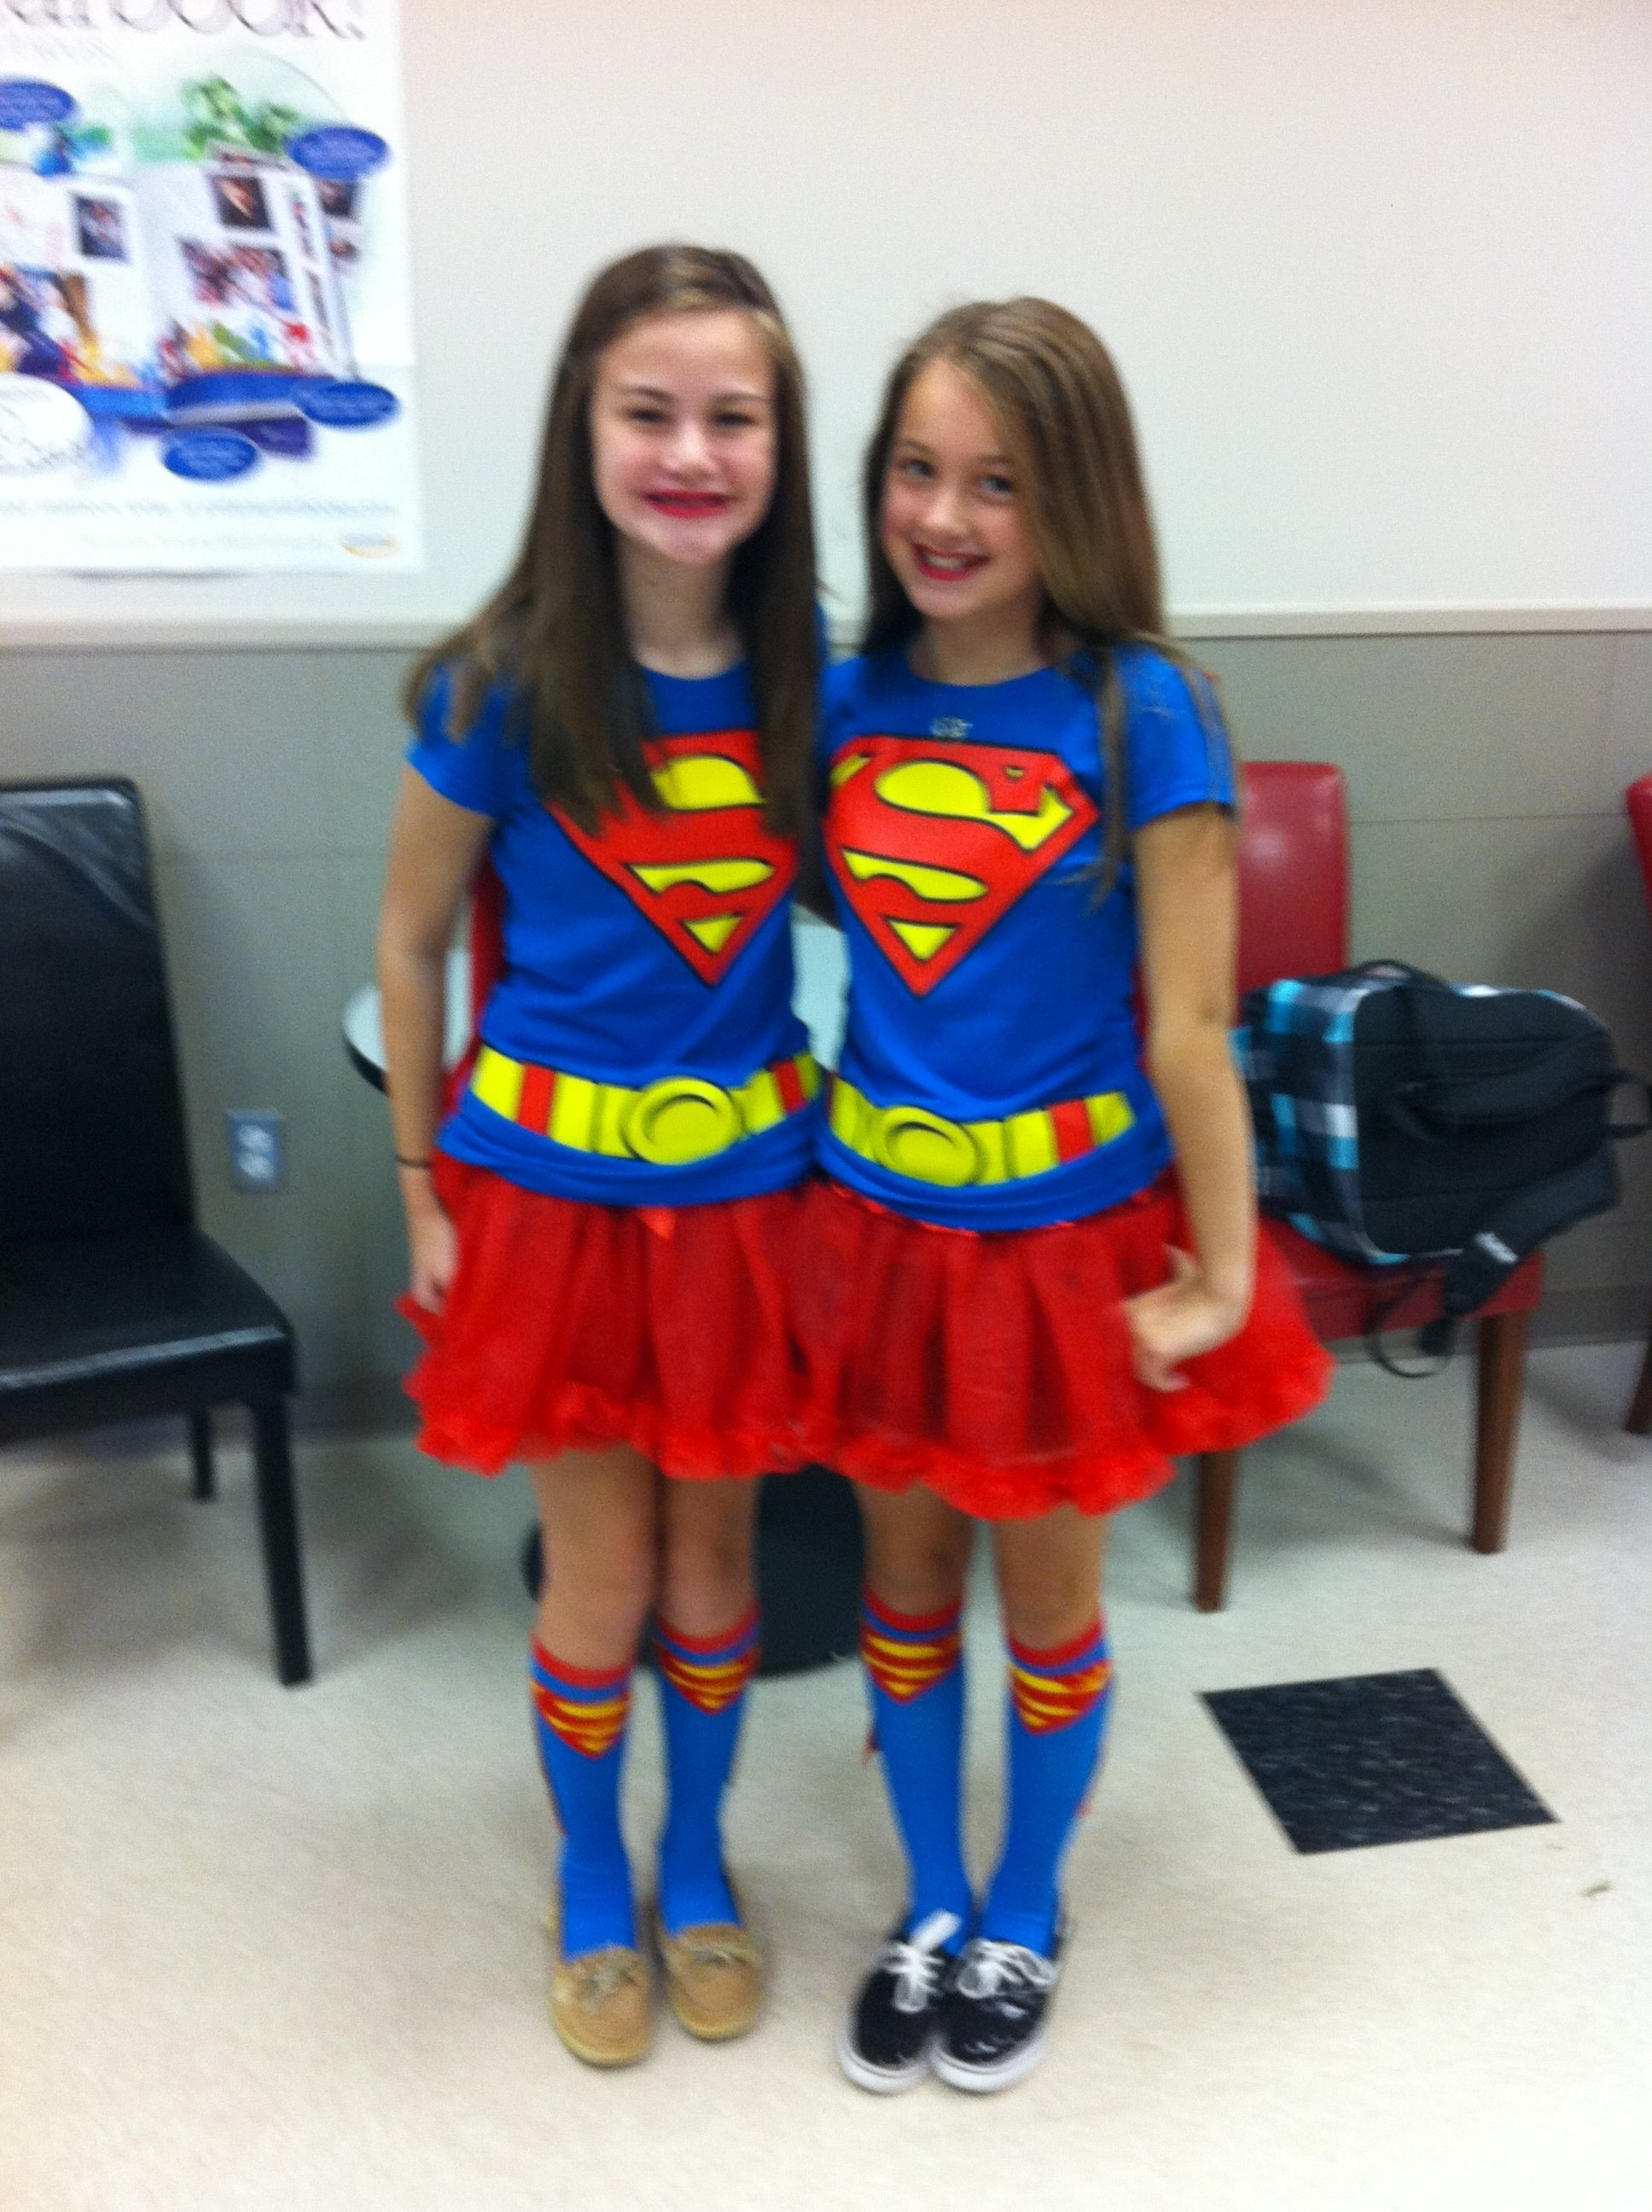 10 Attractive Ideas For Twin Day At School pincora mannino on band camp pinterest band camp 2